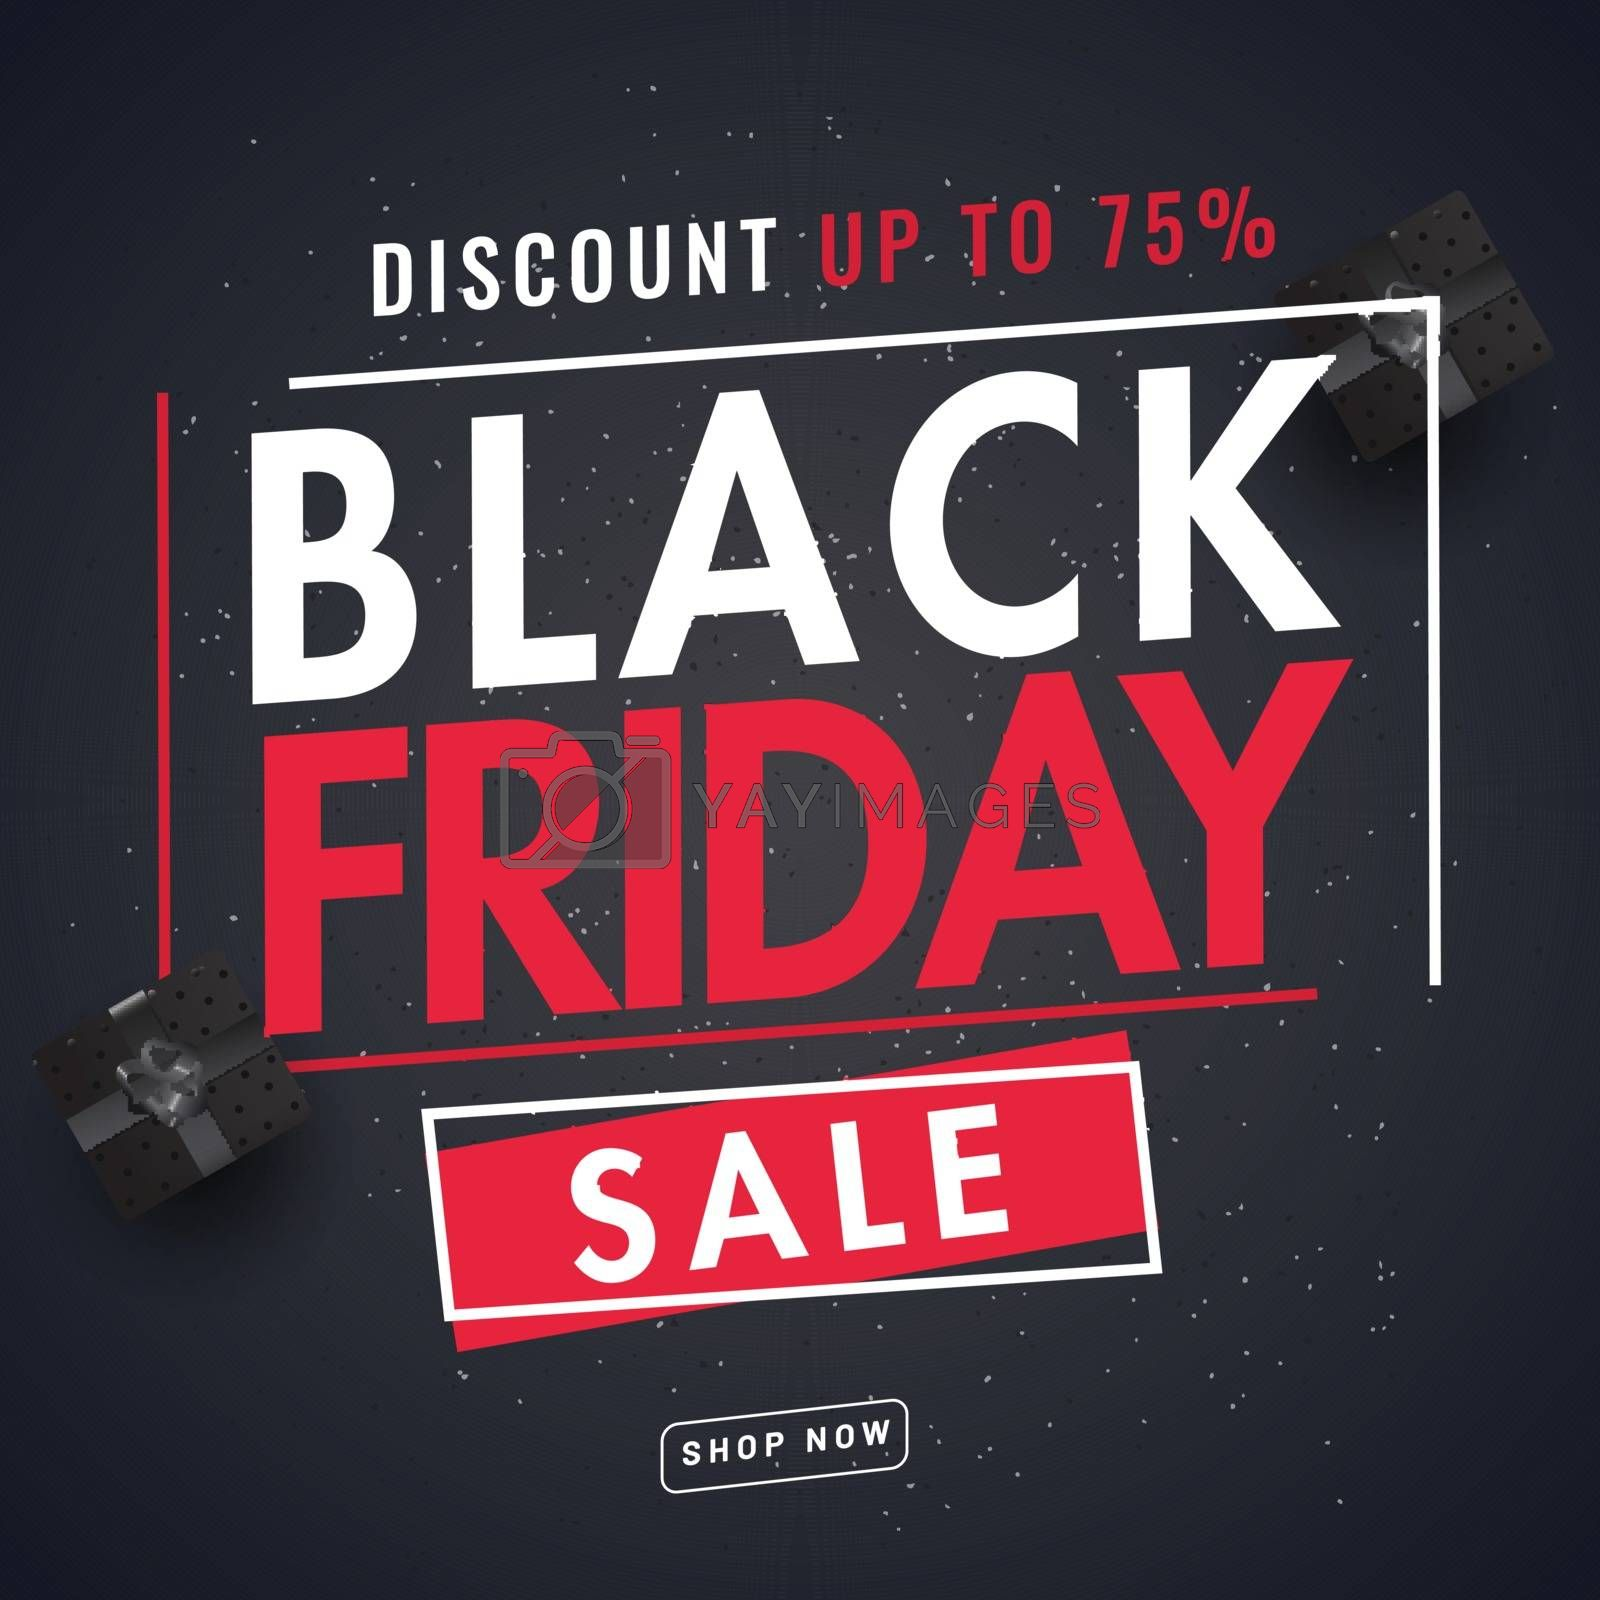 Website template design for Black Friday Sale with 75% discount offer.